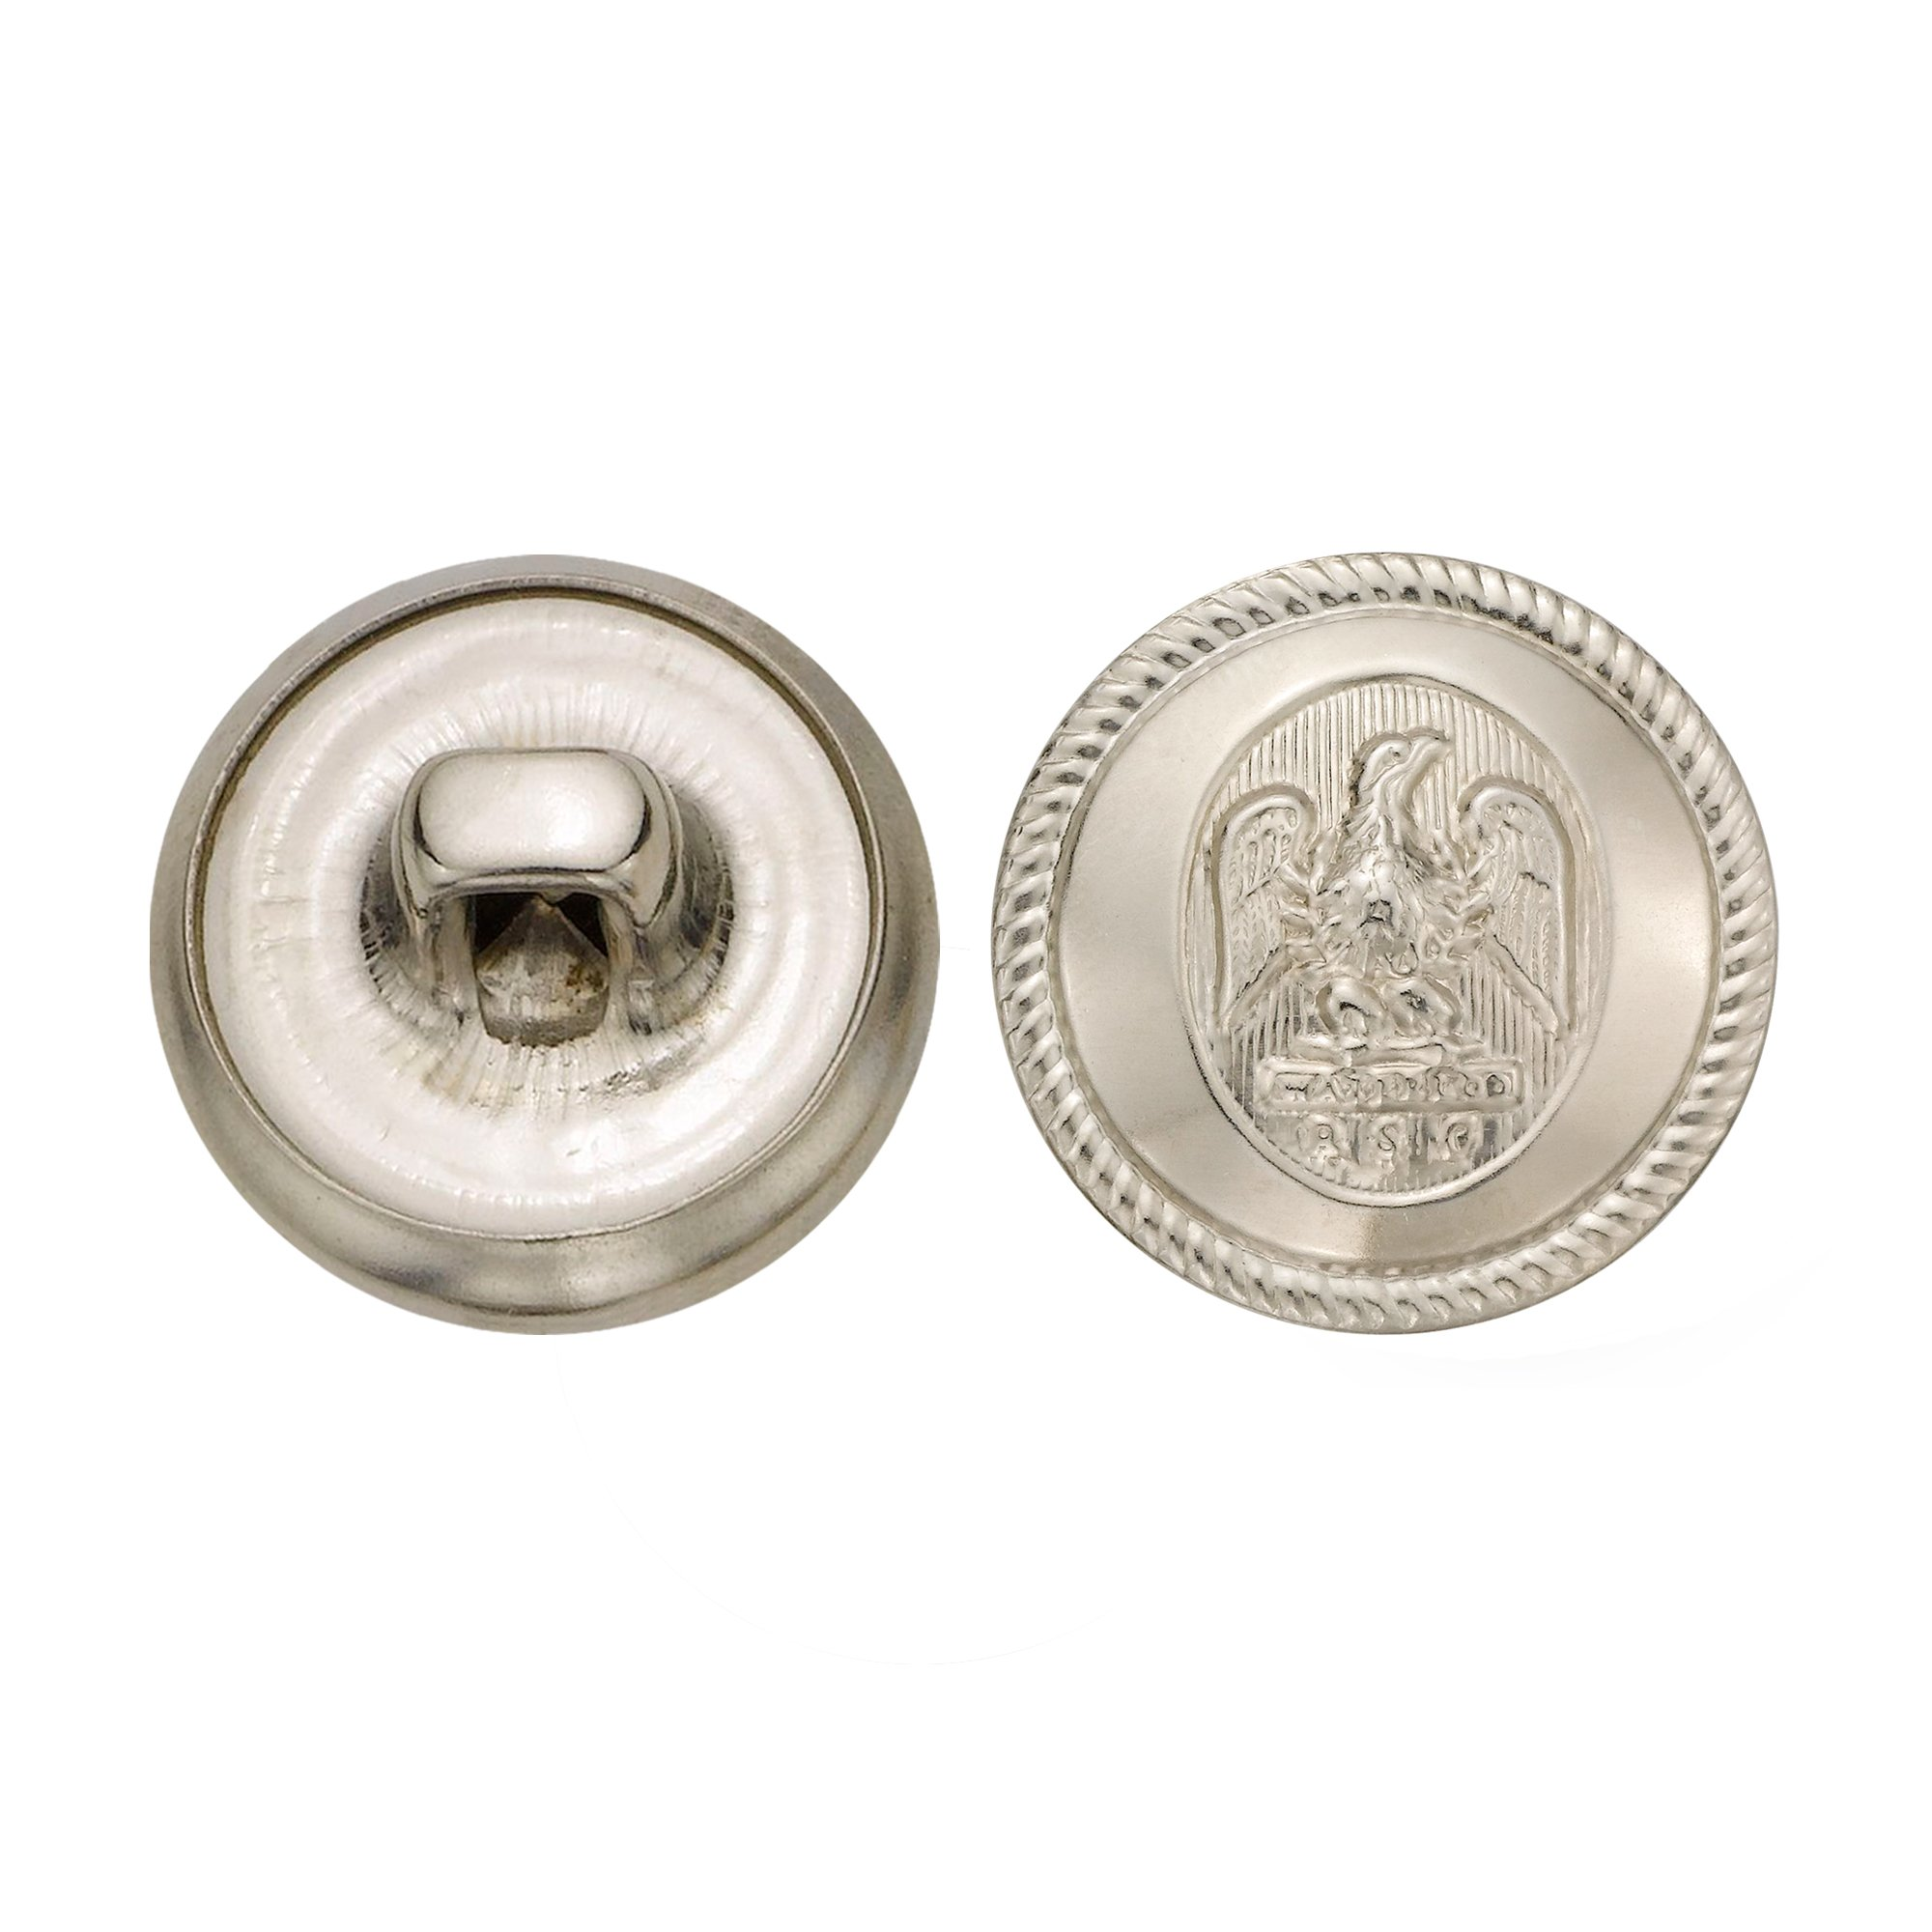 C&C Metal Products 5064 Rope Rim Usa Eagle Metal Button, Size 24 Ligne, Nickel, 72-Pack